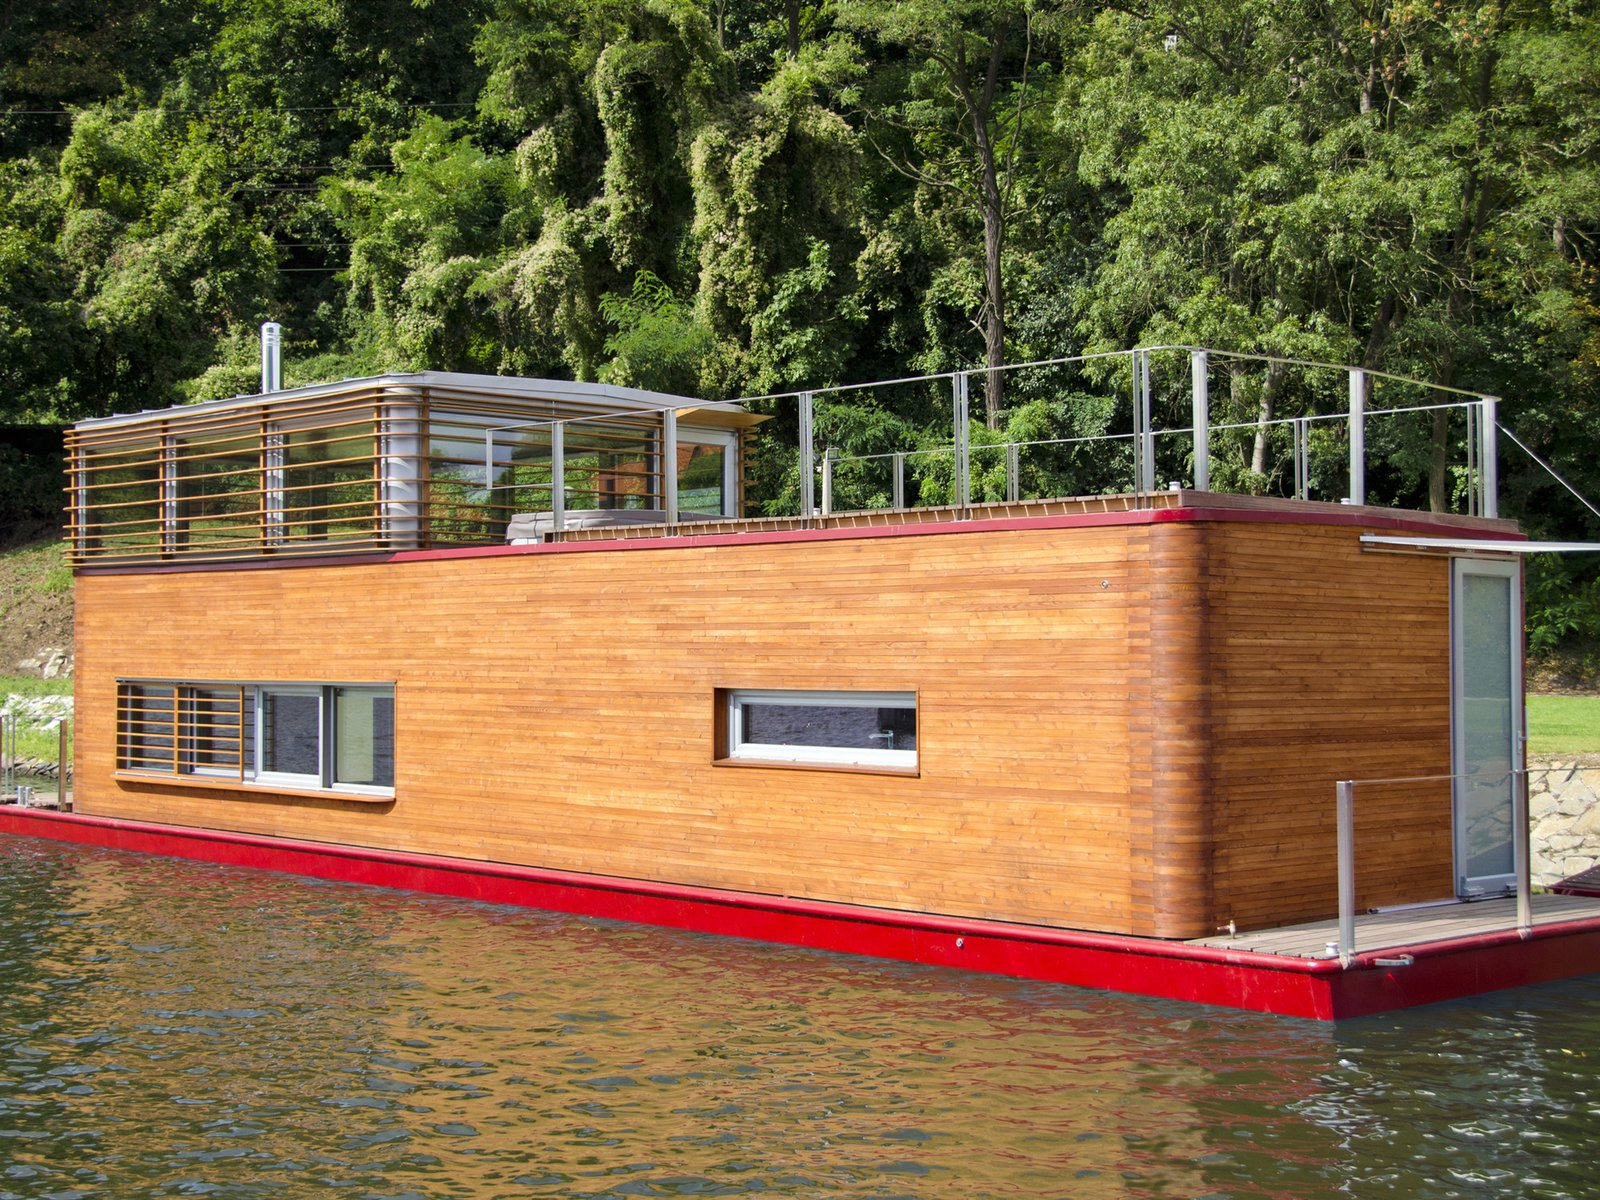 This full-fledged floating house was designed with features that are meant to live comfortably year-round. Tagged: Exterior, Wood Siding Material, and Boathouse Building Type.  Photo 9 of 11 in 10 Modern Floating Homes That Offer an Aquatic Lifestyle